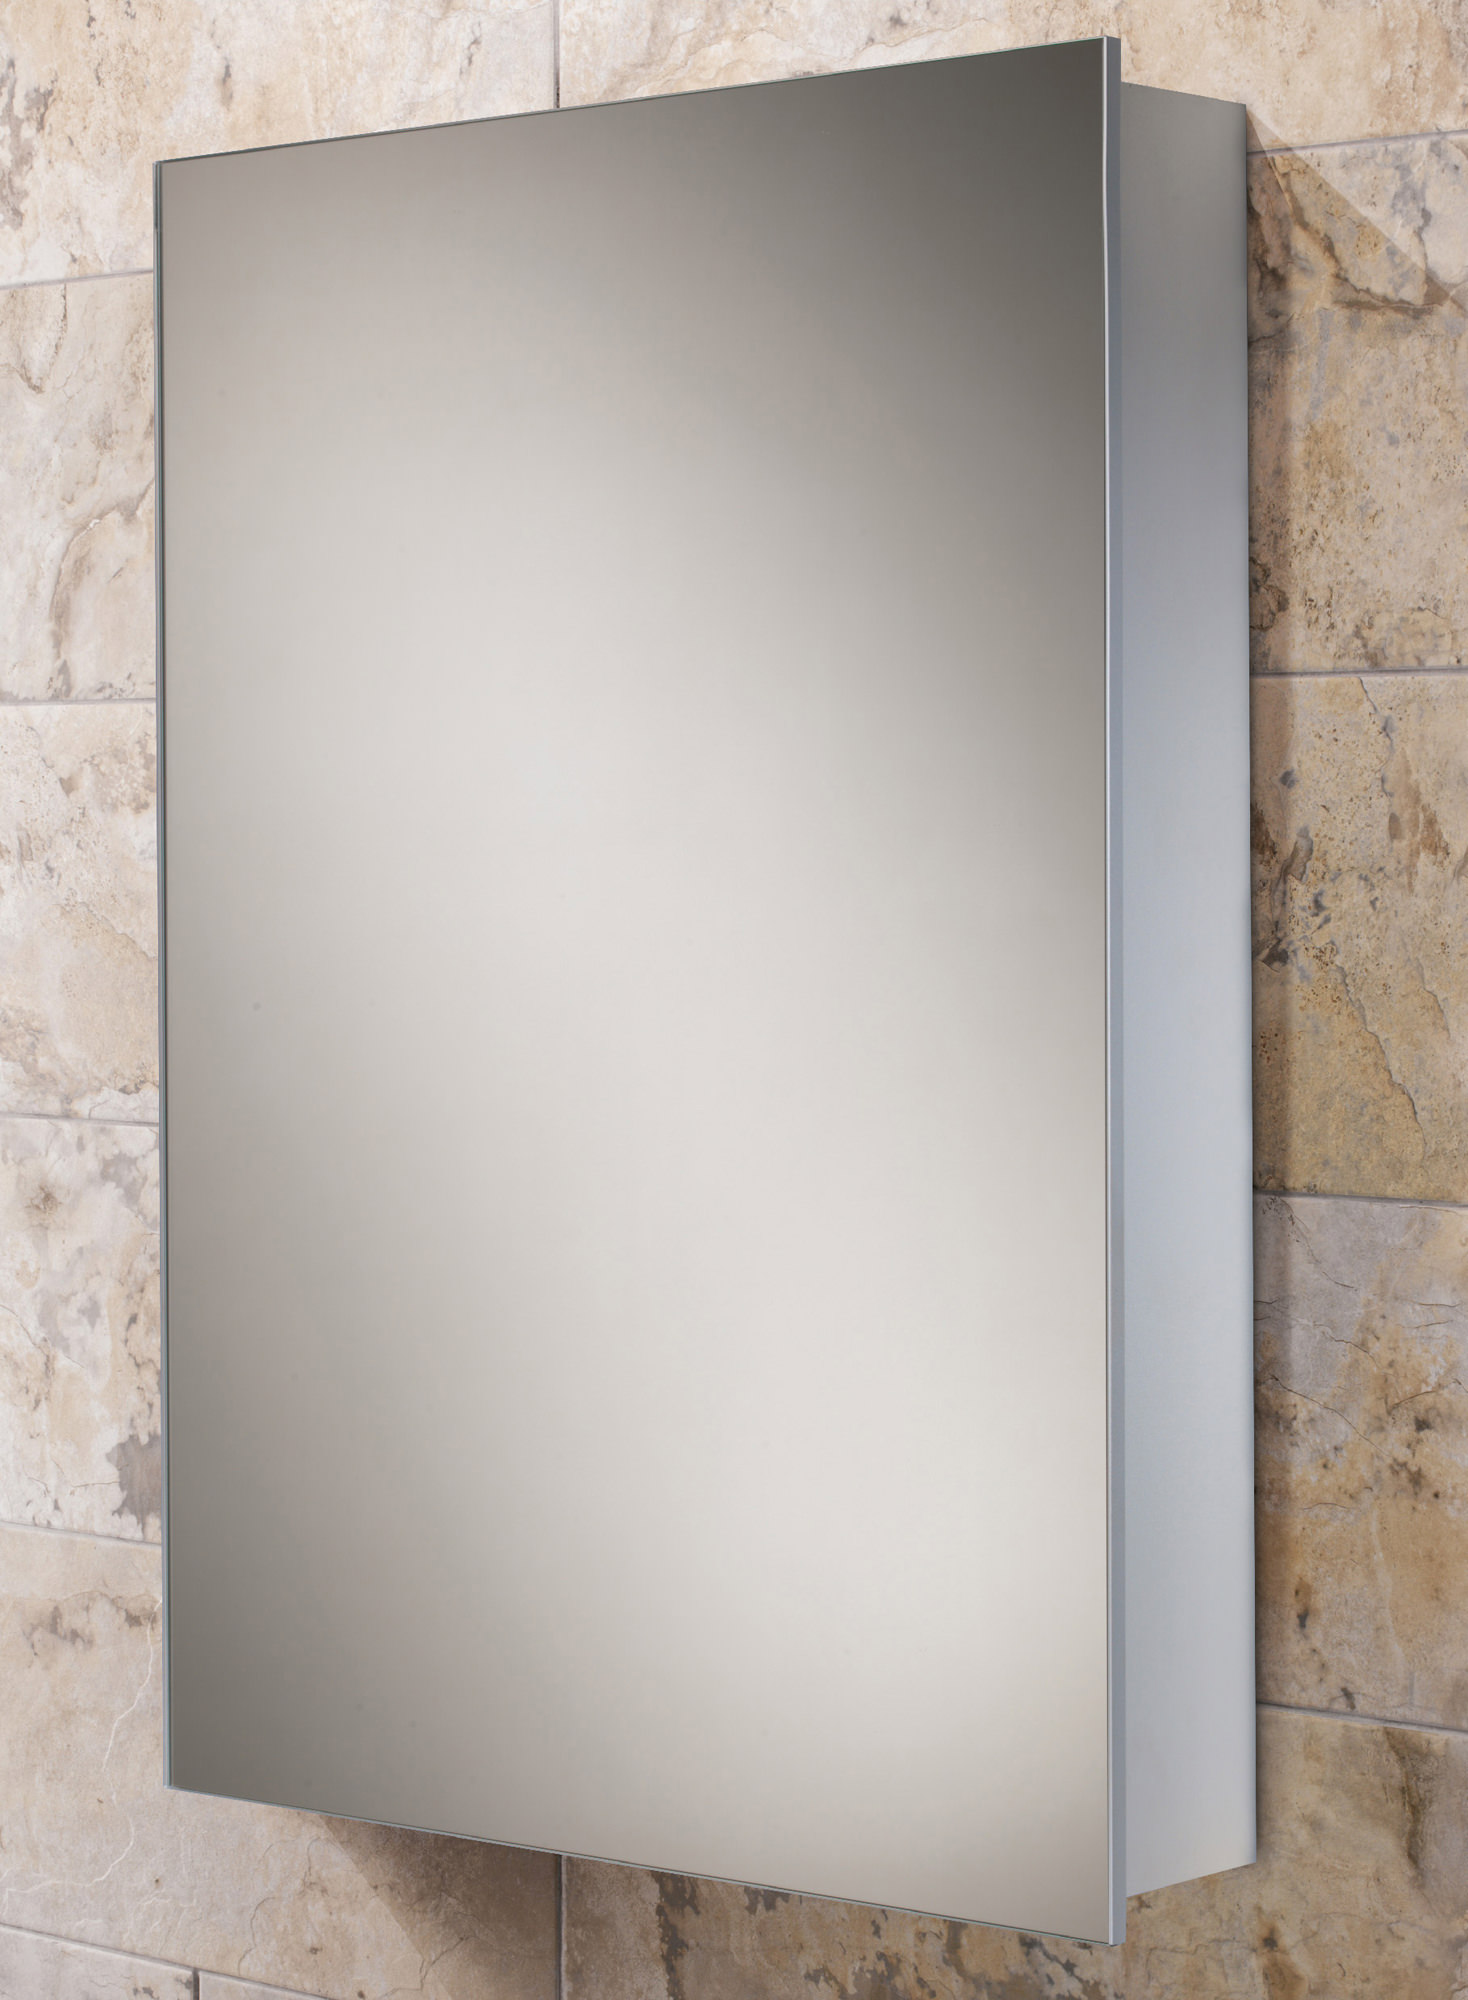 Hib kore slim line aluminium bathroom cabinet 400 x 600mm for Slimline bathroom cabinet